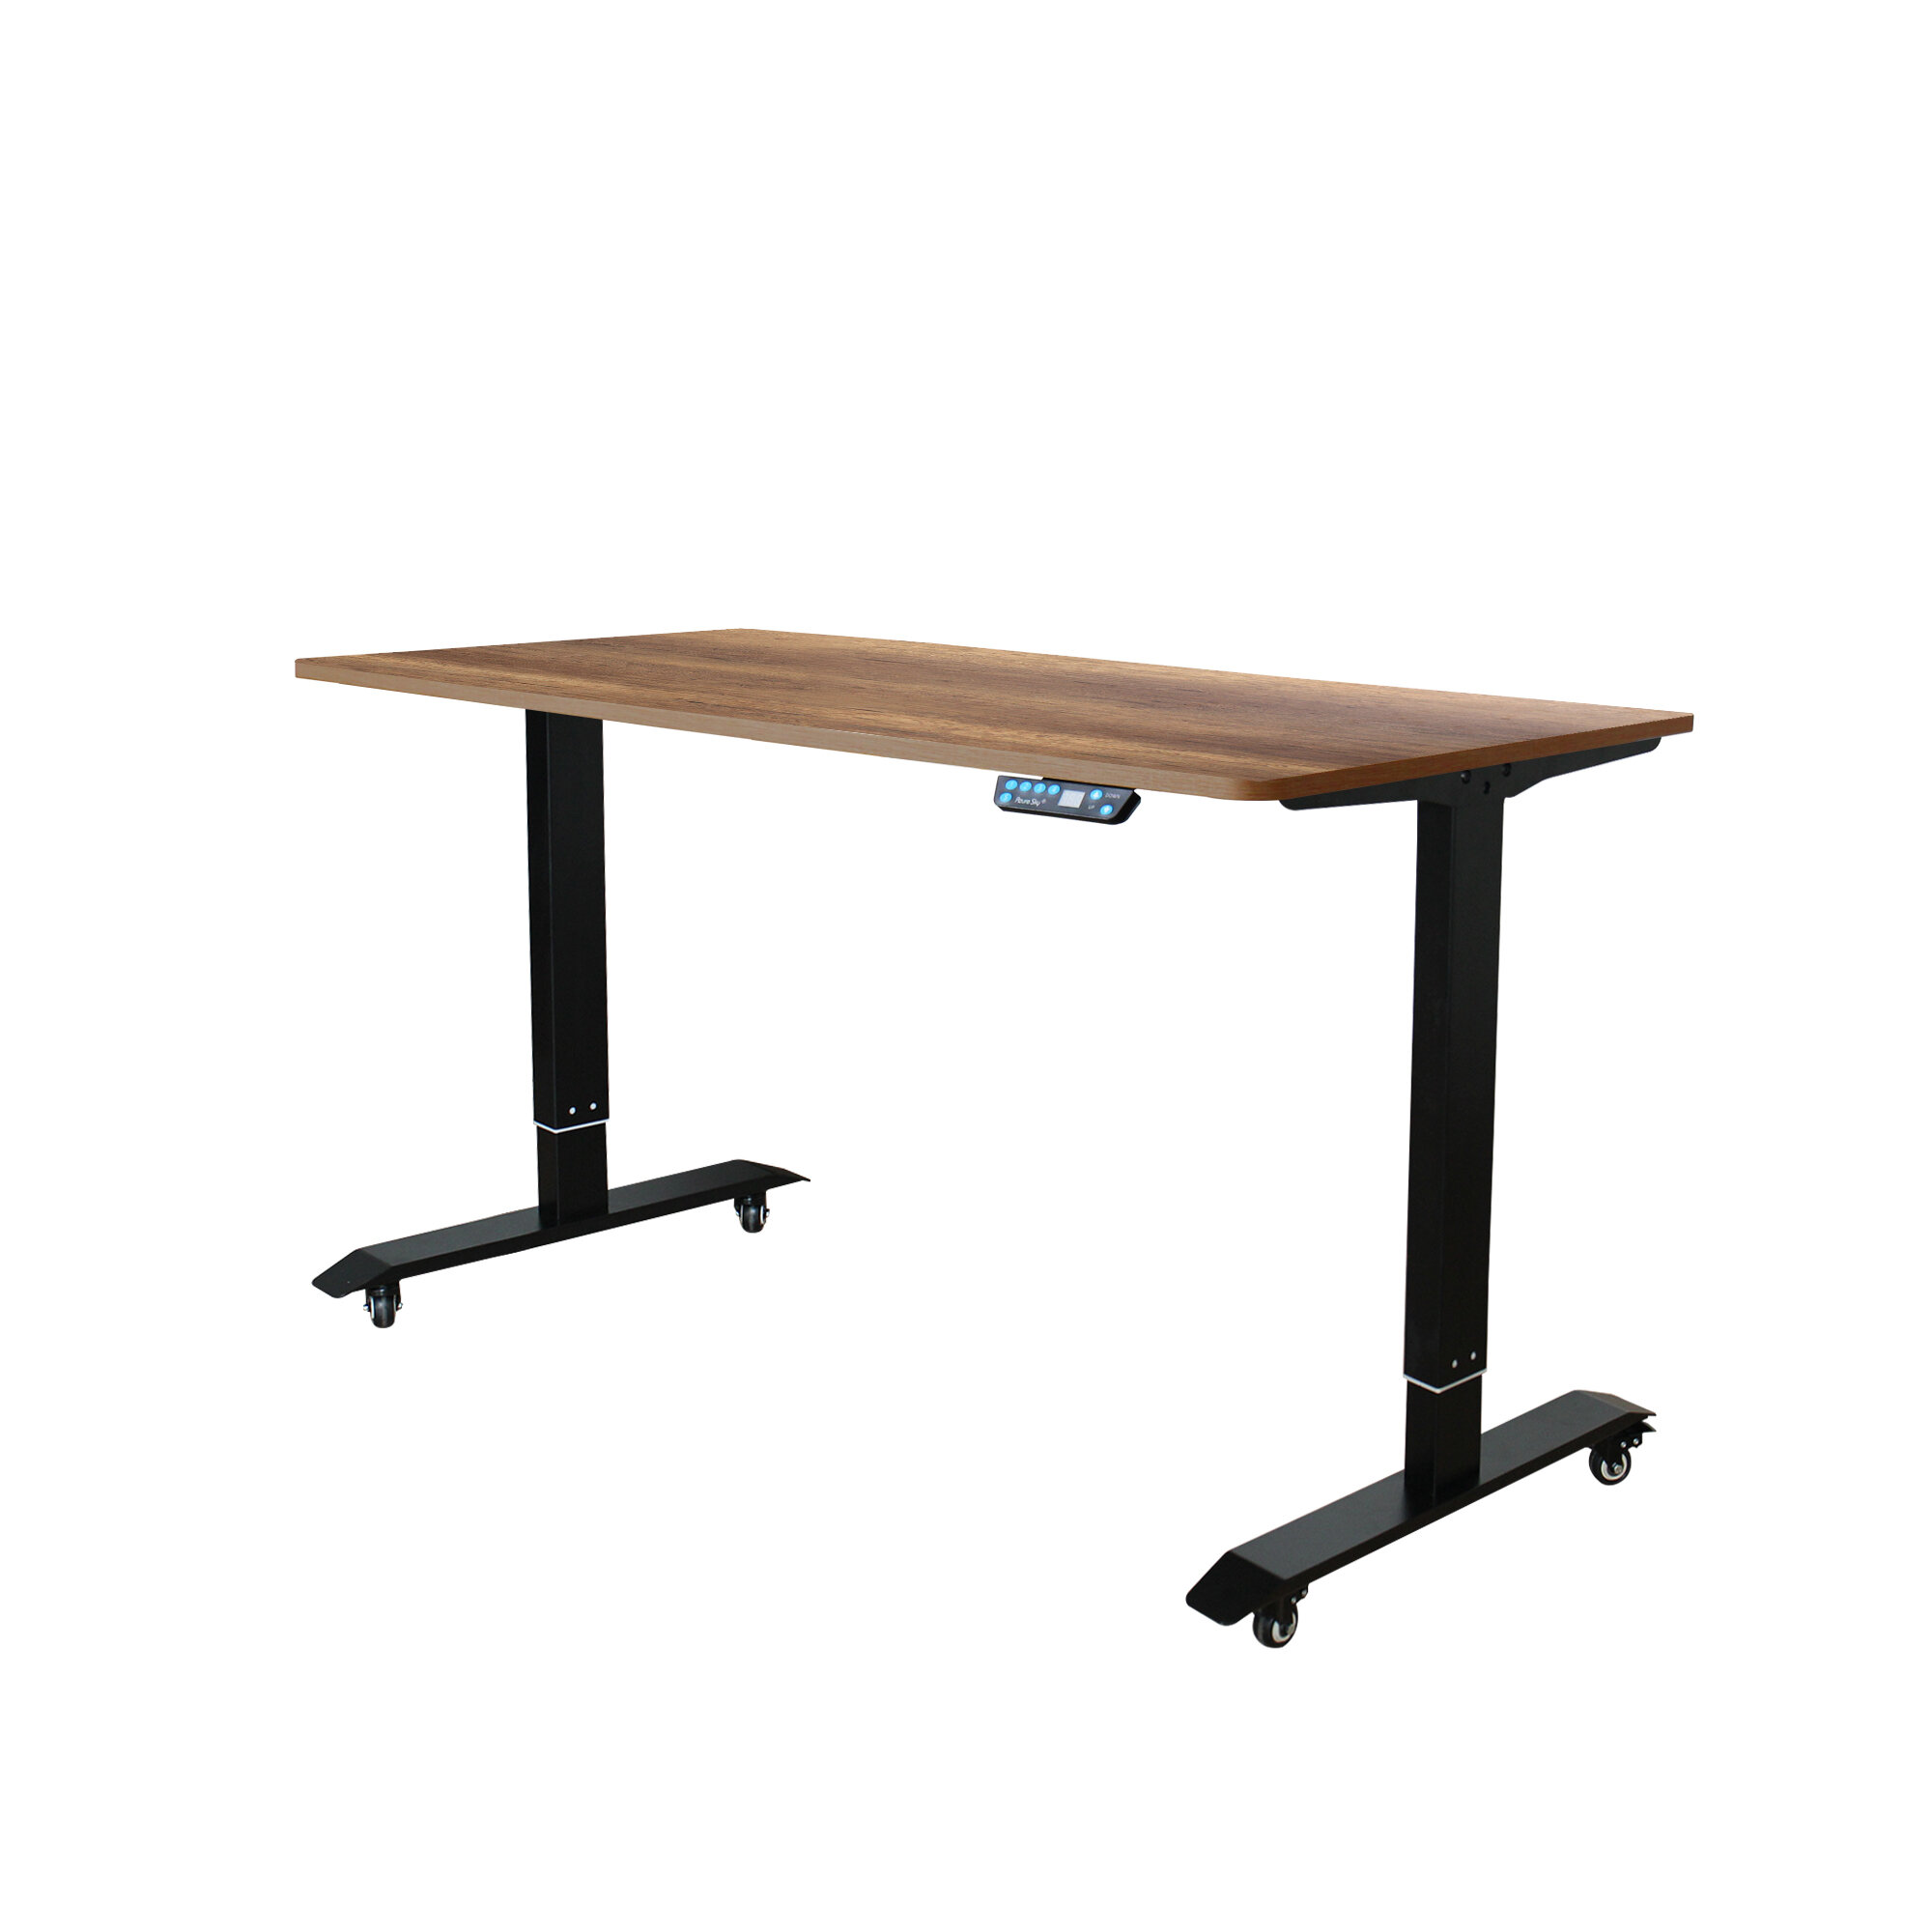 Symple Stuff Mollie Ergonomic Height Adjustable Standing Desk Wayfair